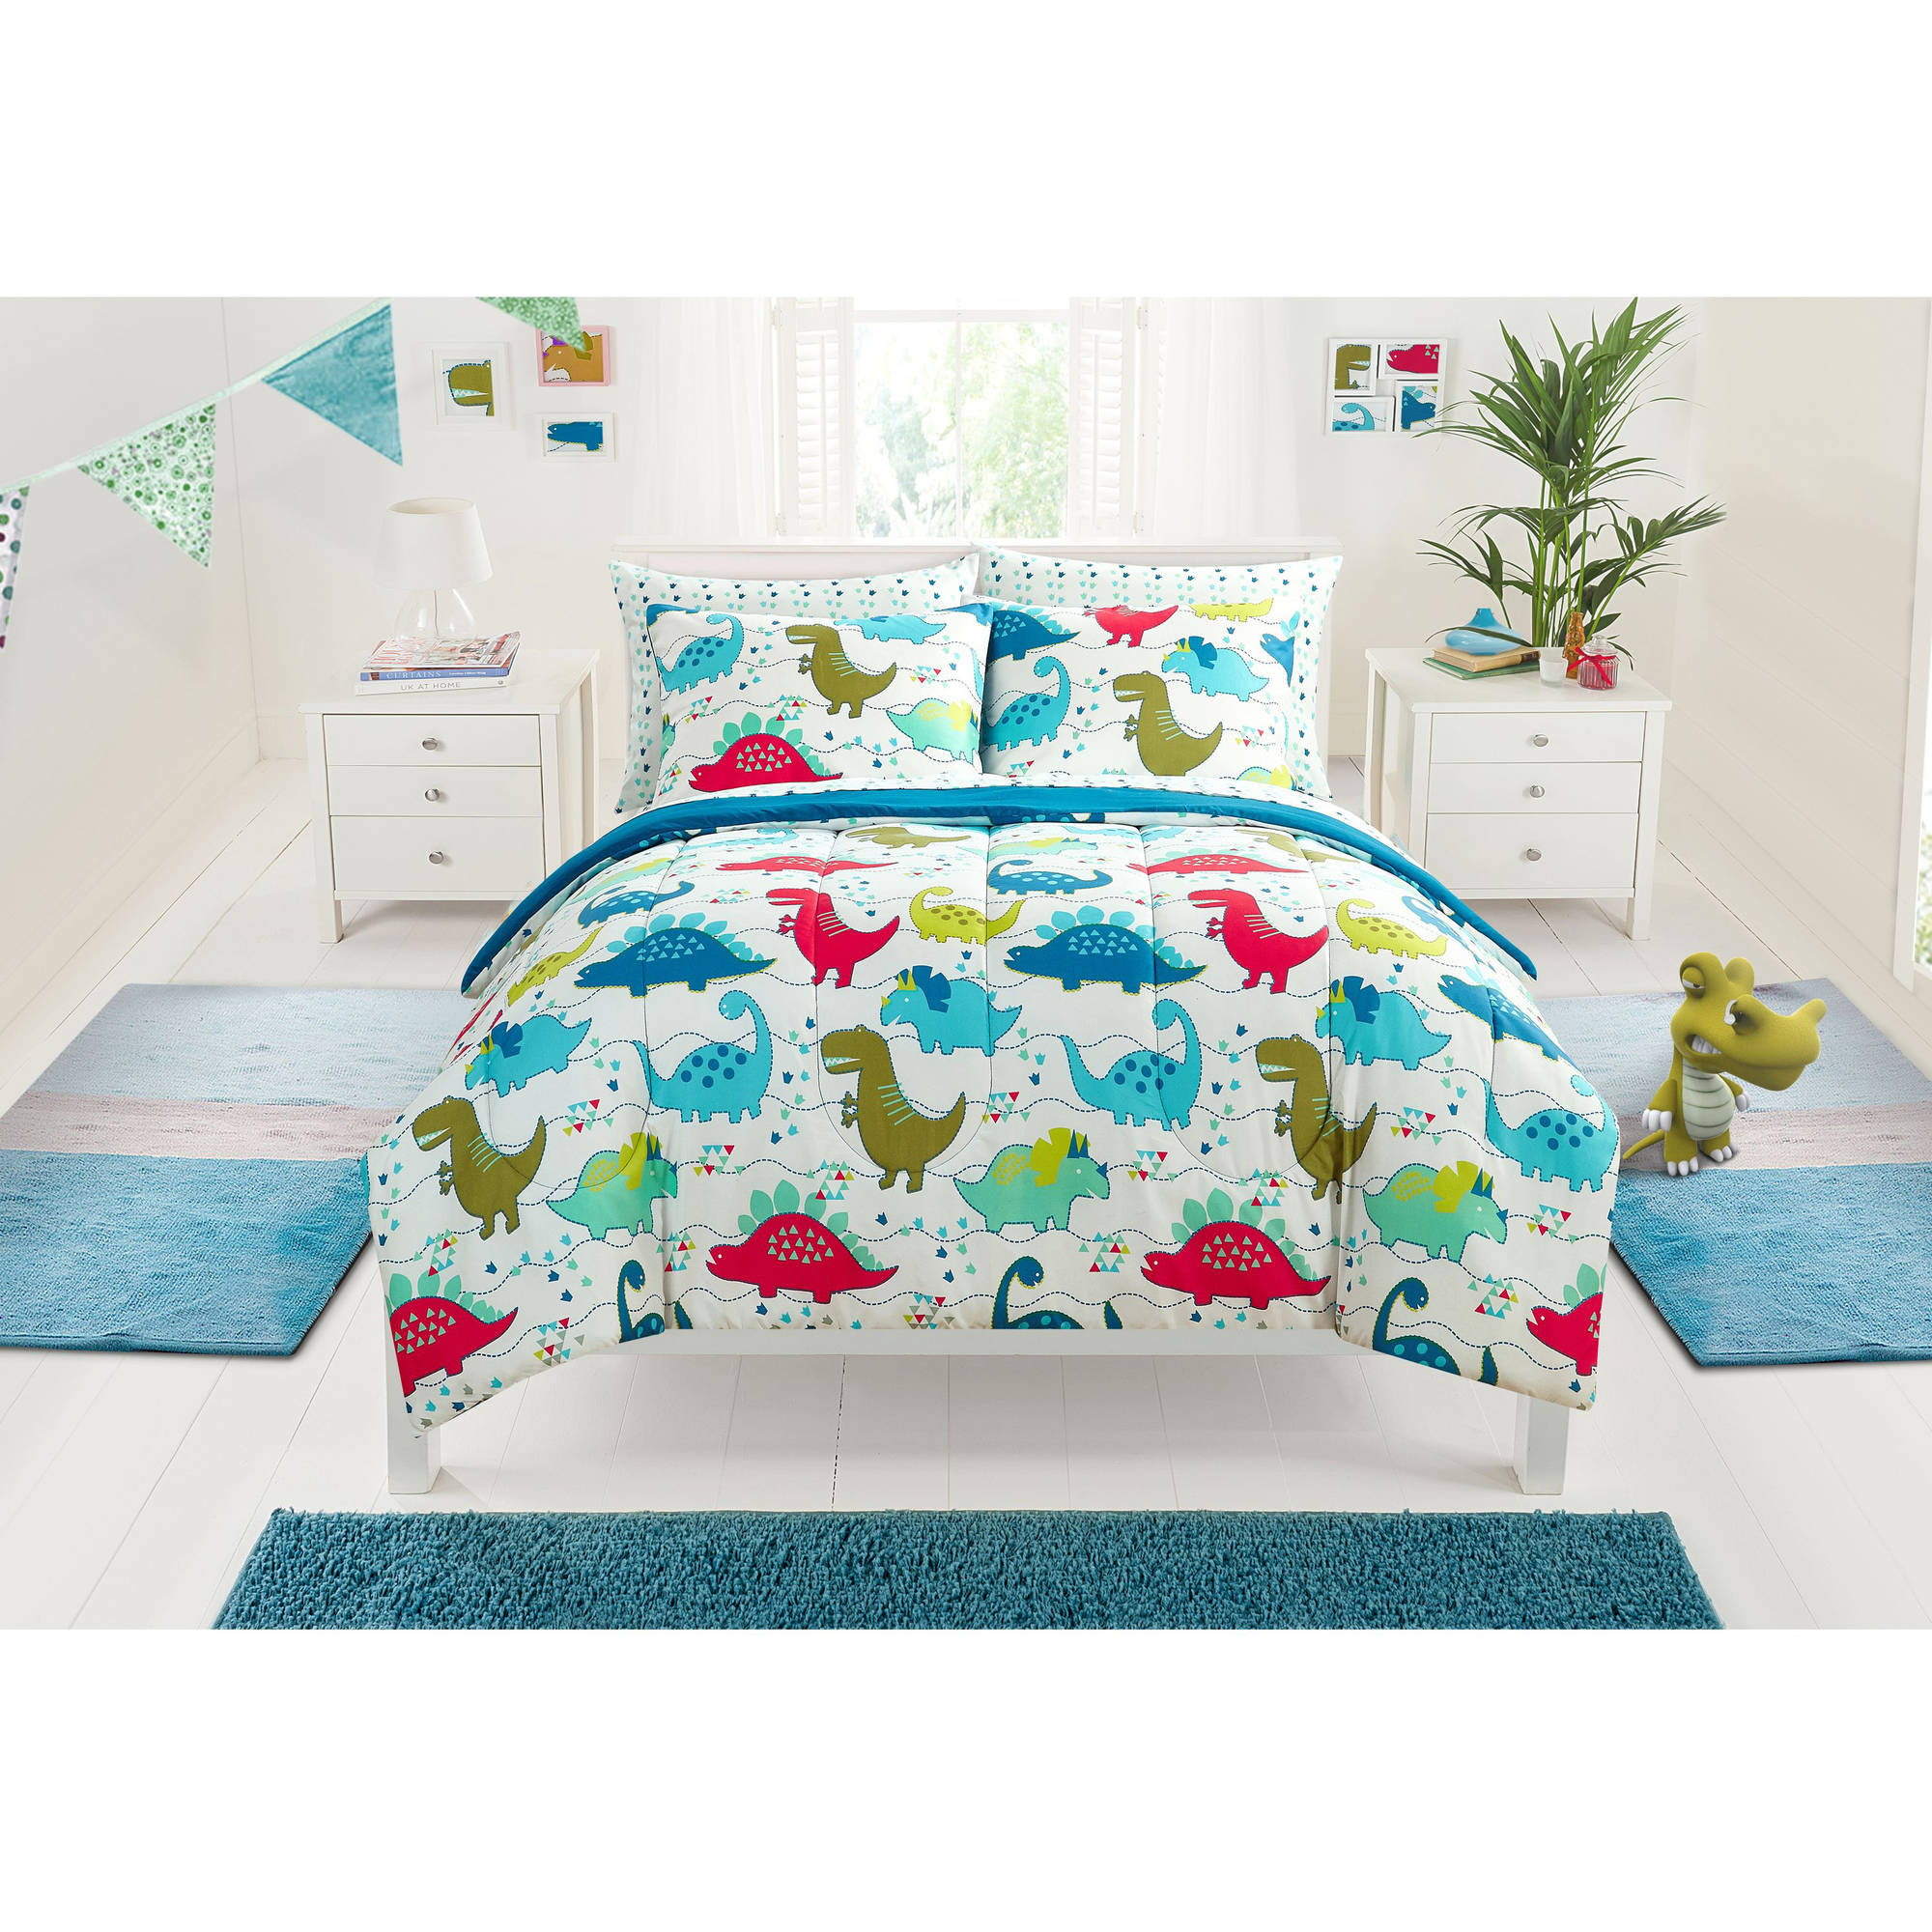 Mainstays Kids Dino Roar Bed in a Bag Bedding Set - Walmart.com